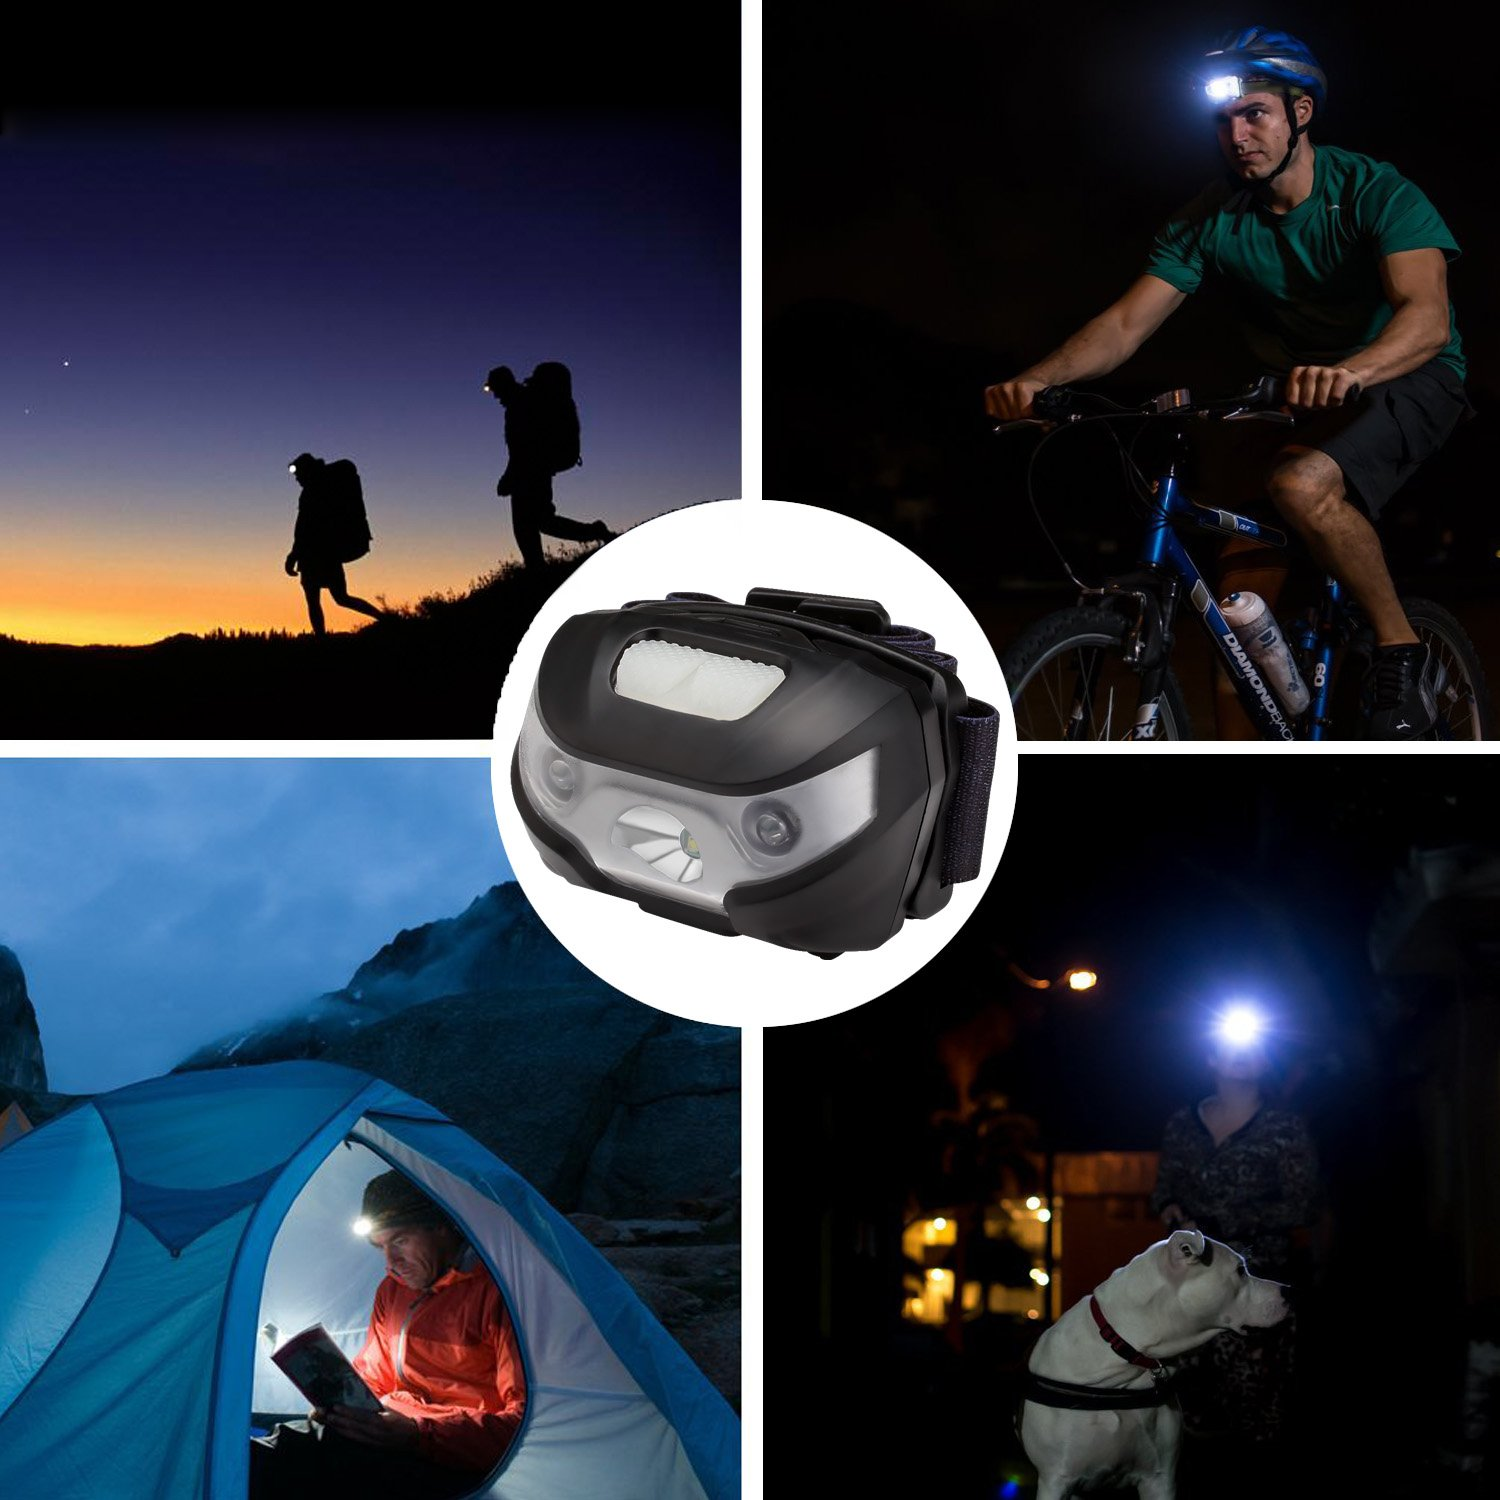 LED Rechargeable Headlamp made our CampingForFoodies hand-selected list of 100+ Camping Stocking Stuffers For RV And Tent Campers!